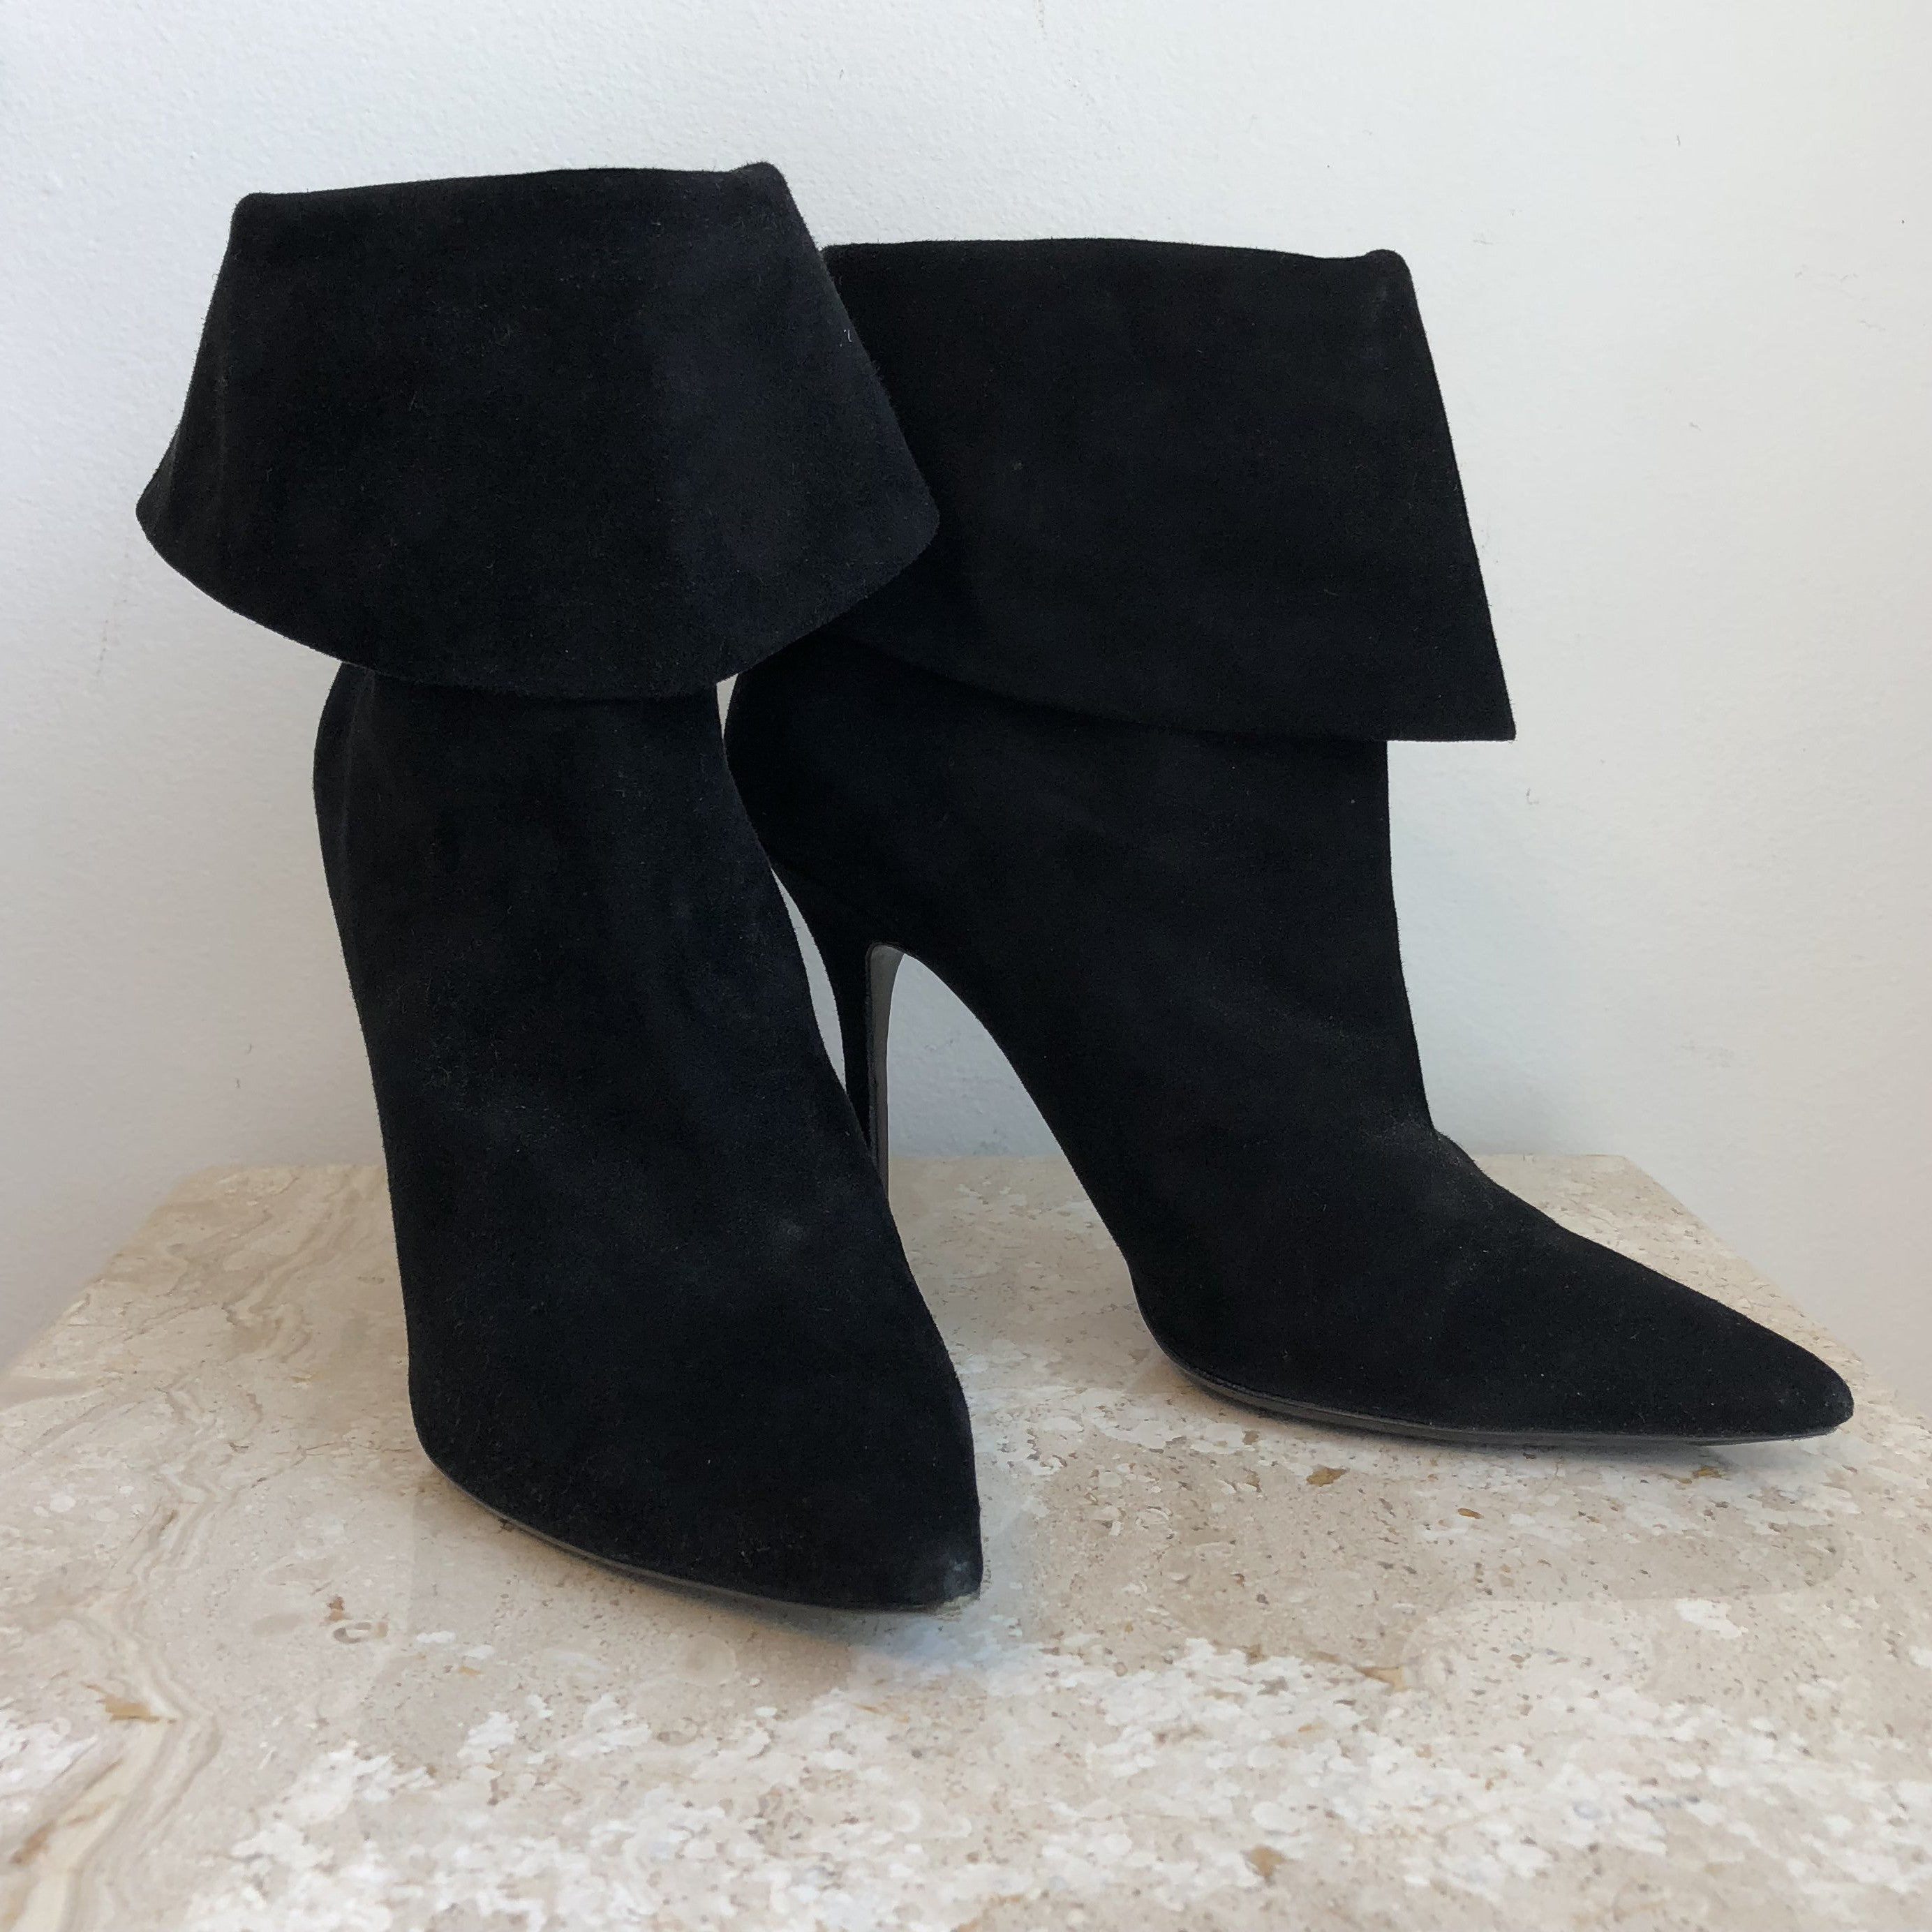 Authentic CHRISTIAN DIOR Suede Ankle Boots